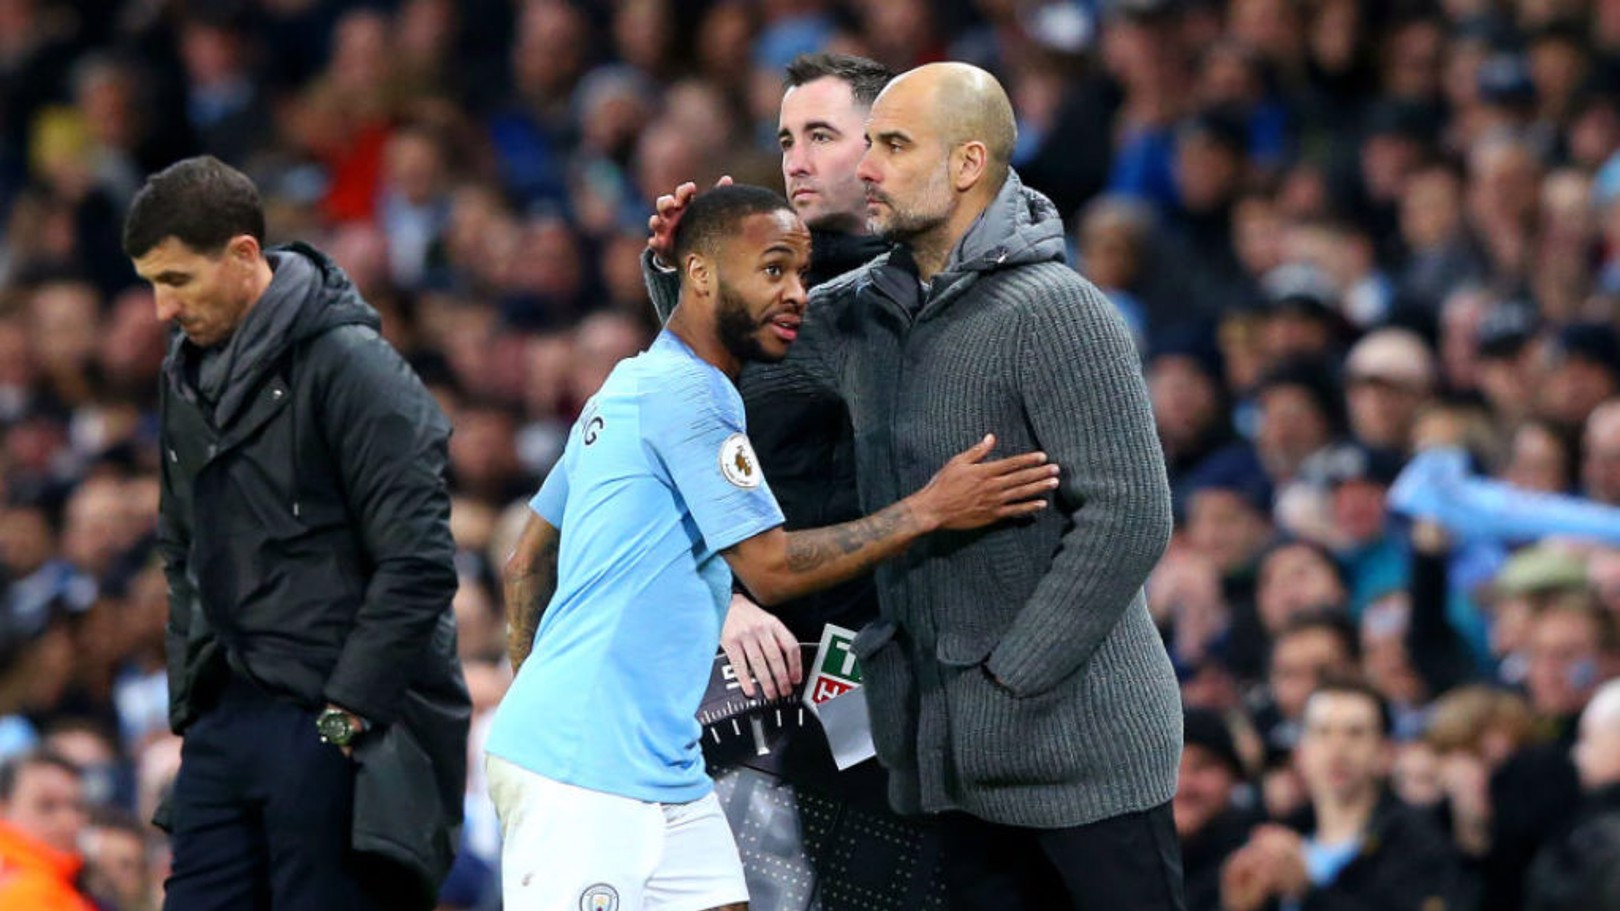 JOB DONE: Raz gets a deserved pat on the shoulder from boss Pep Guardiola